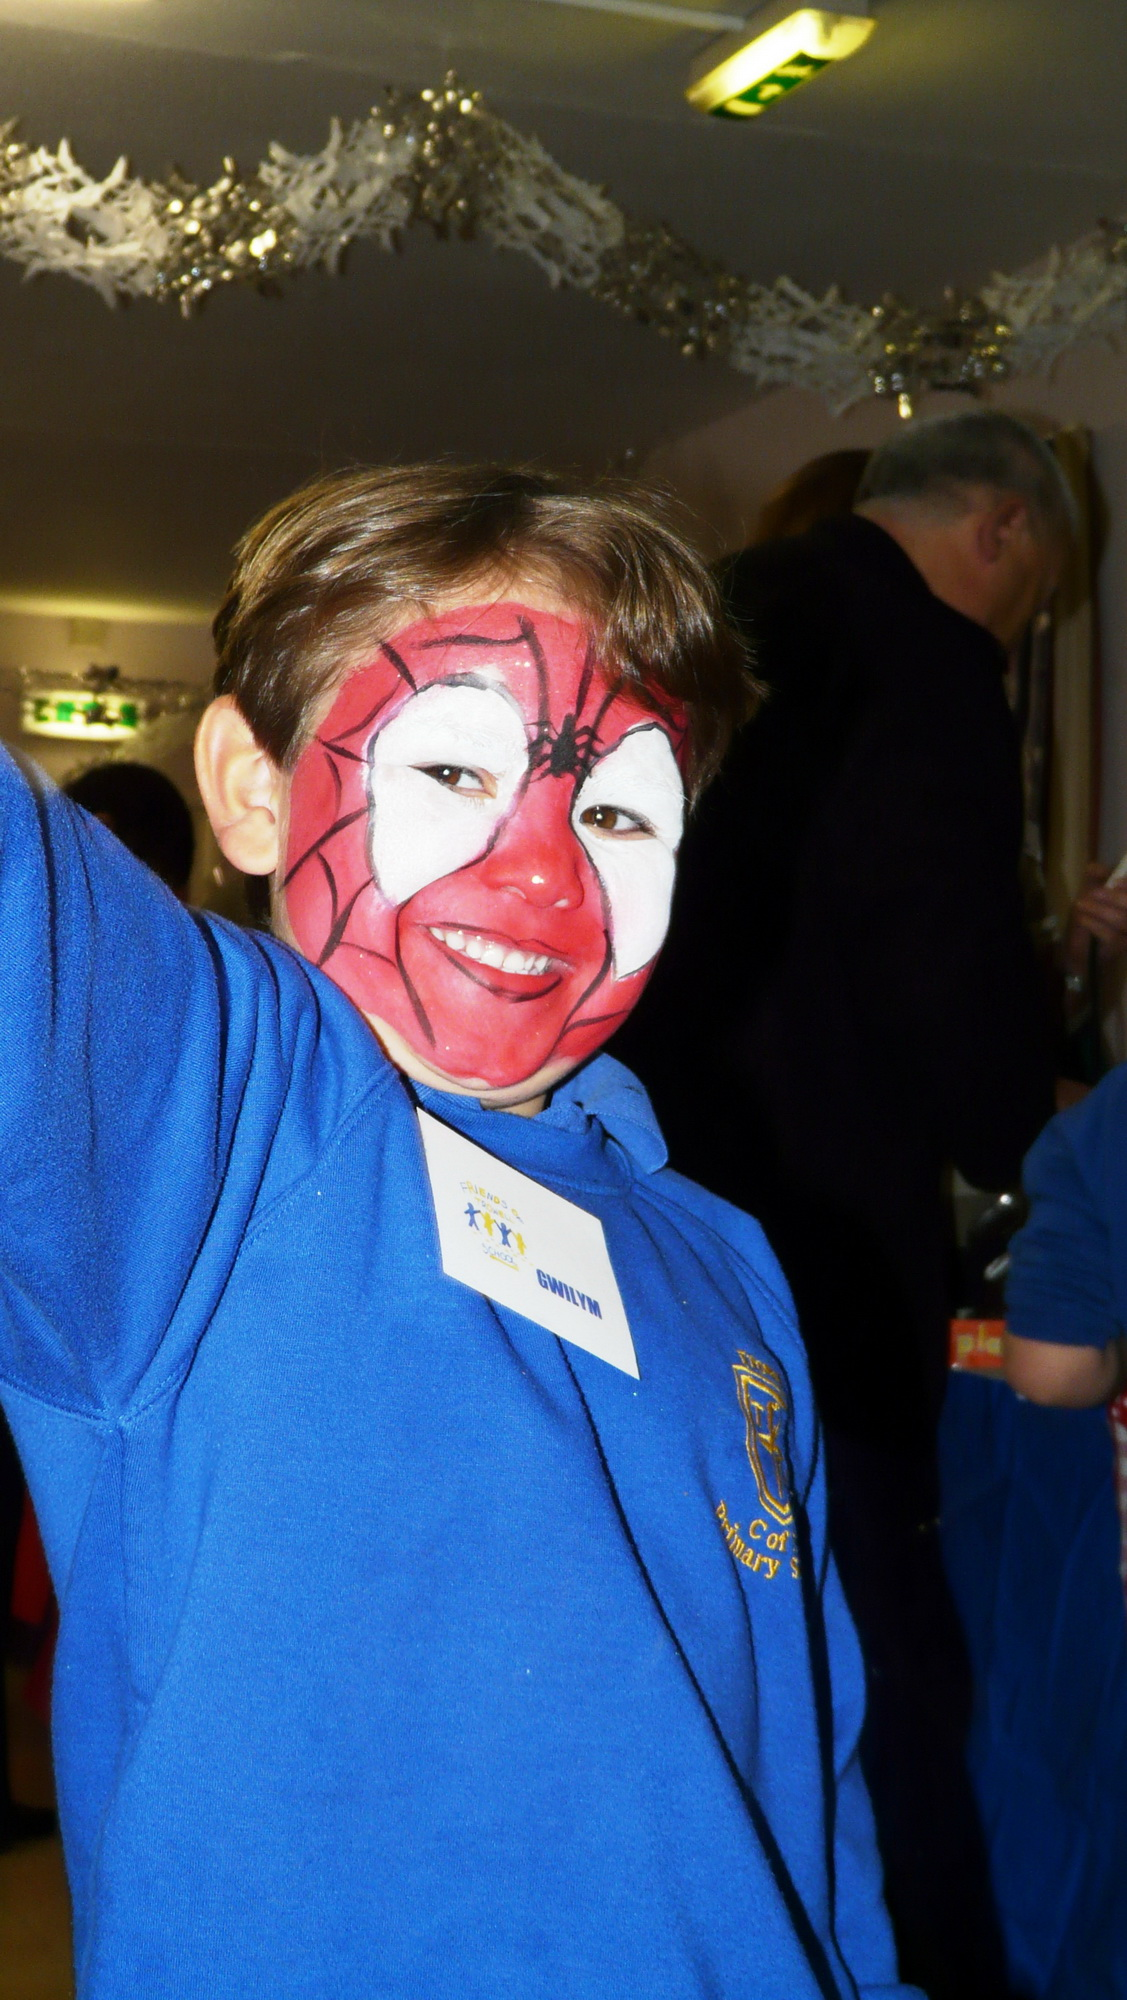 A happy member of Trowell FC in disguise